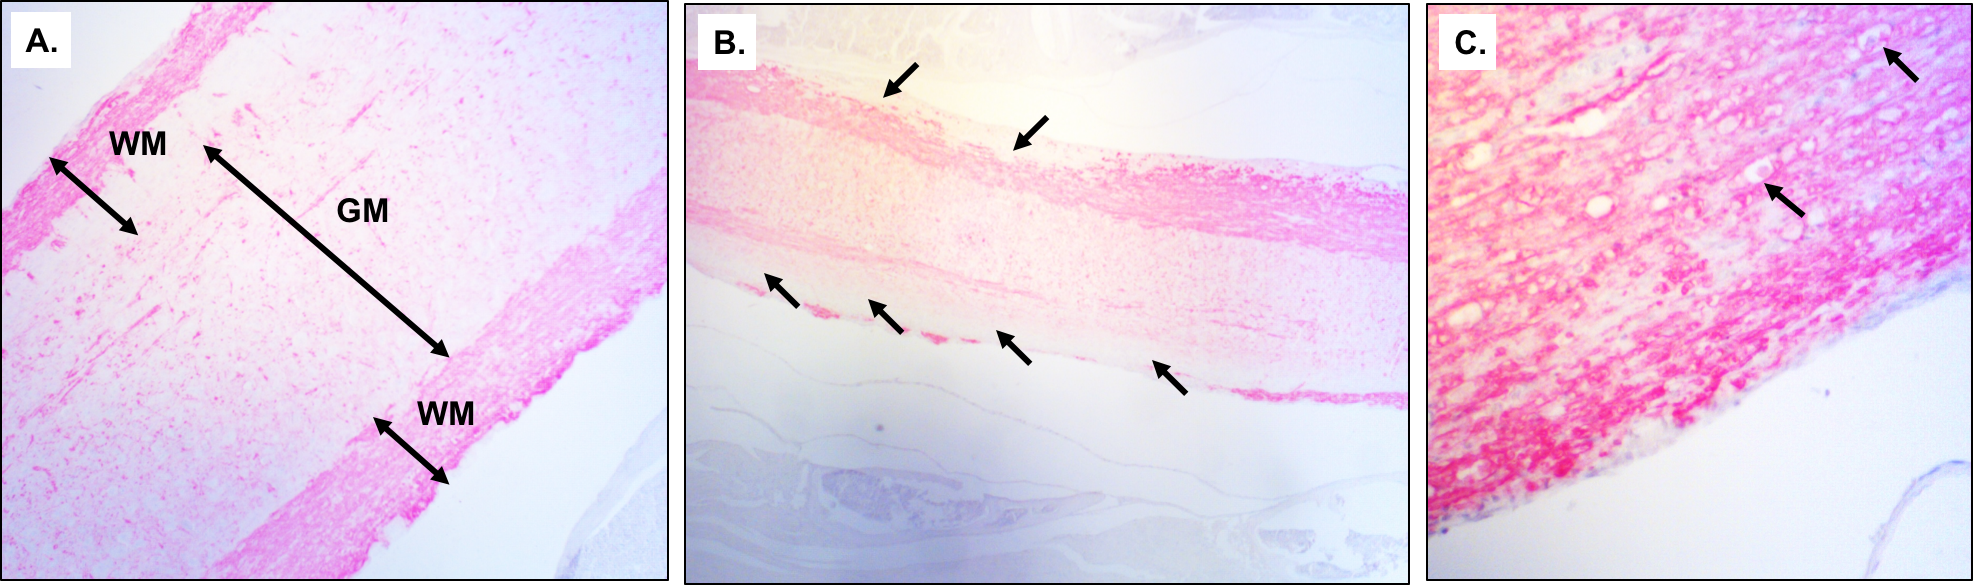 IHC-Staining-Longitudinal-Sections-of-Spinal-Cord-Myelin-Basic-Protein_MOG-Induced-EAE-Model-Mice